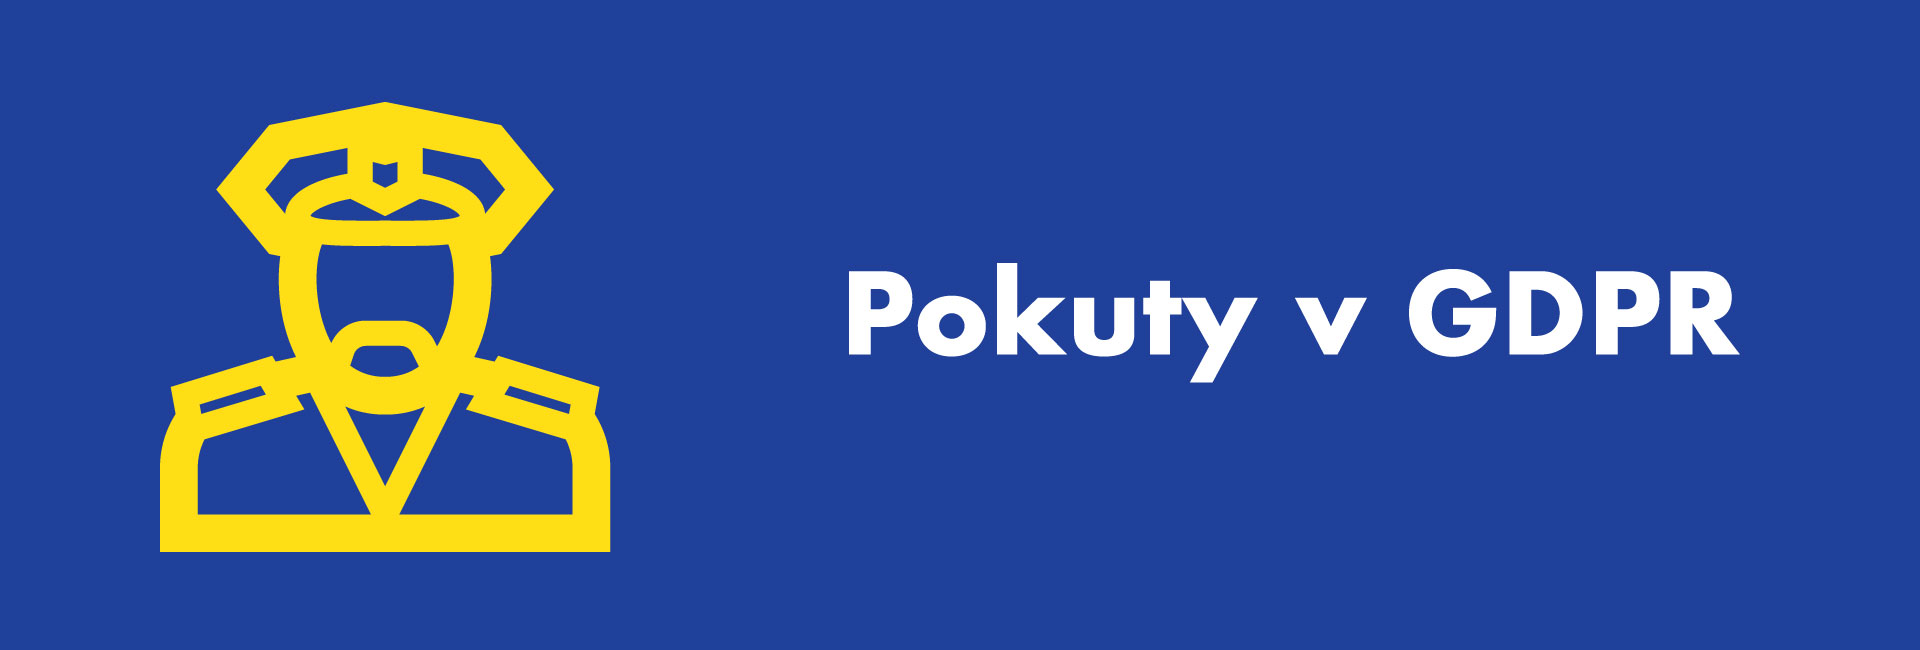 Pokuty v General Data Protection Regulation- GDPR